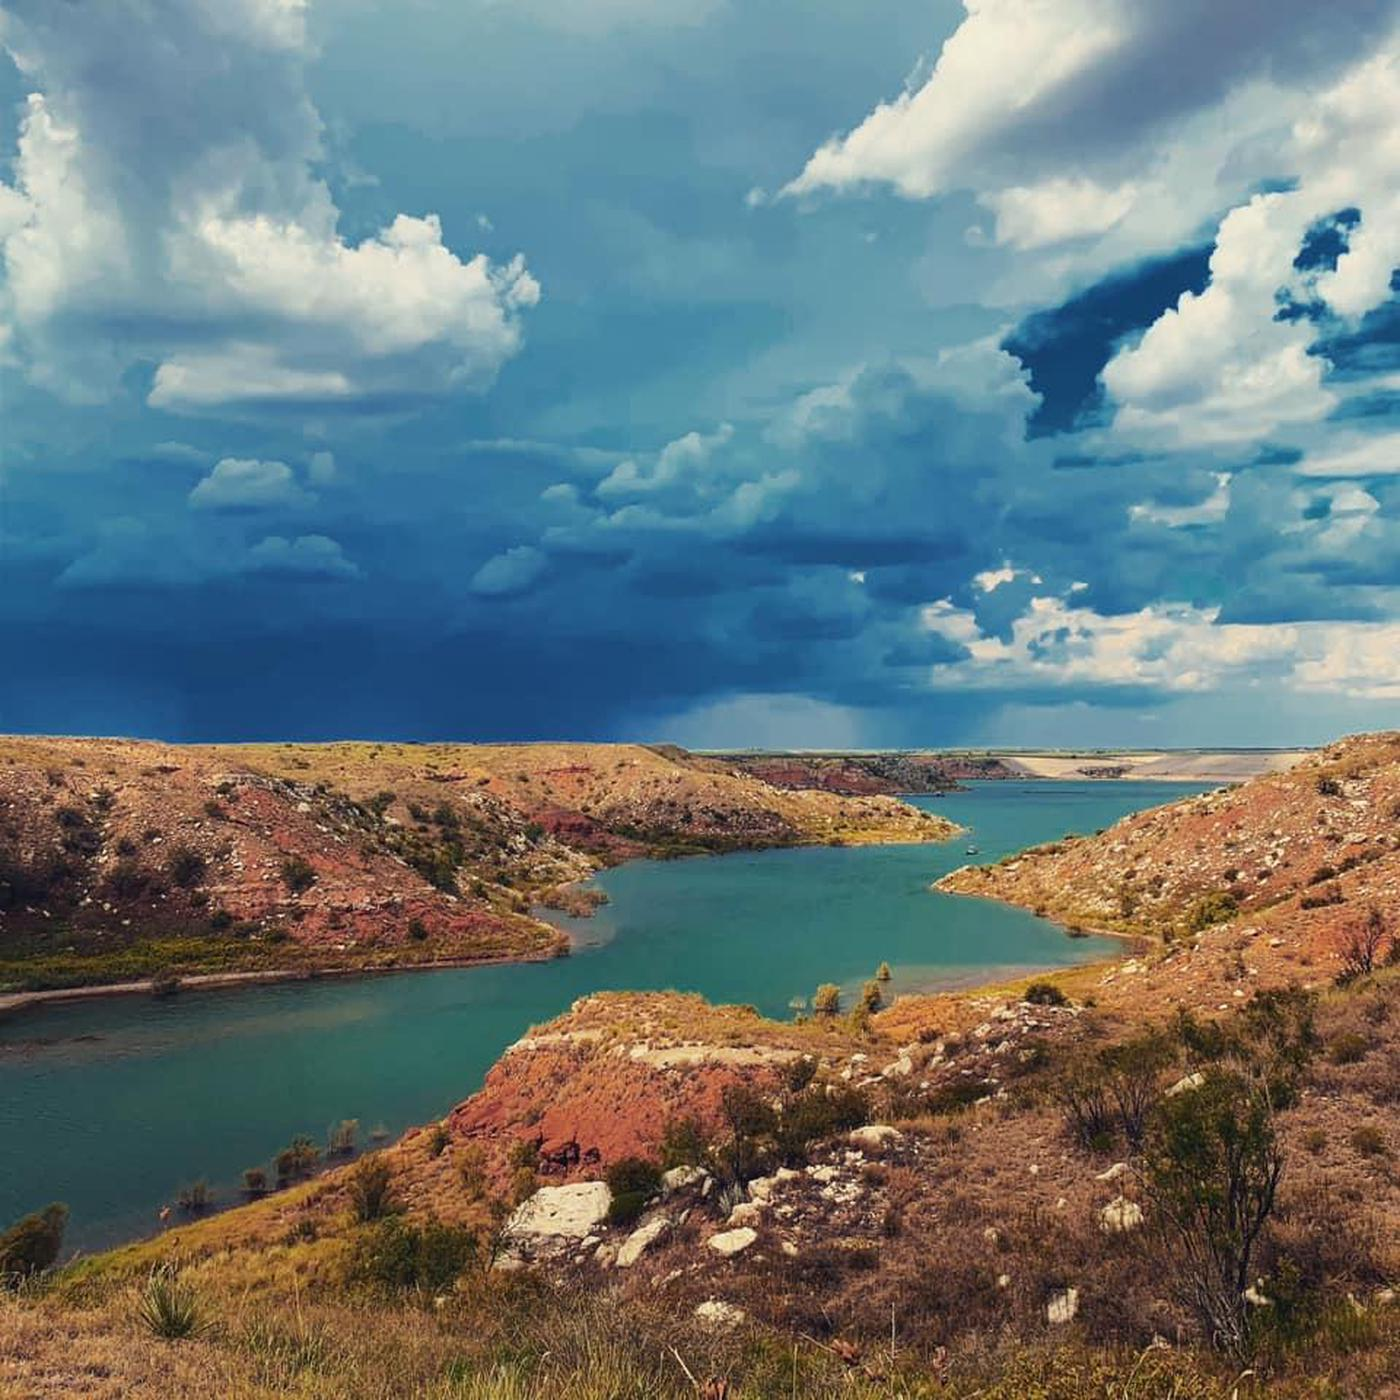 Lake Meredith StormWeather in the Texas Panhandle